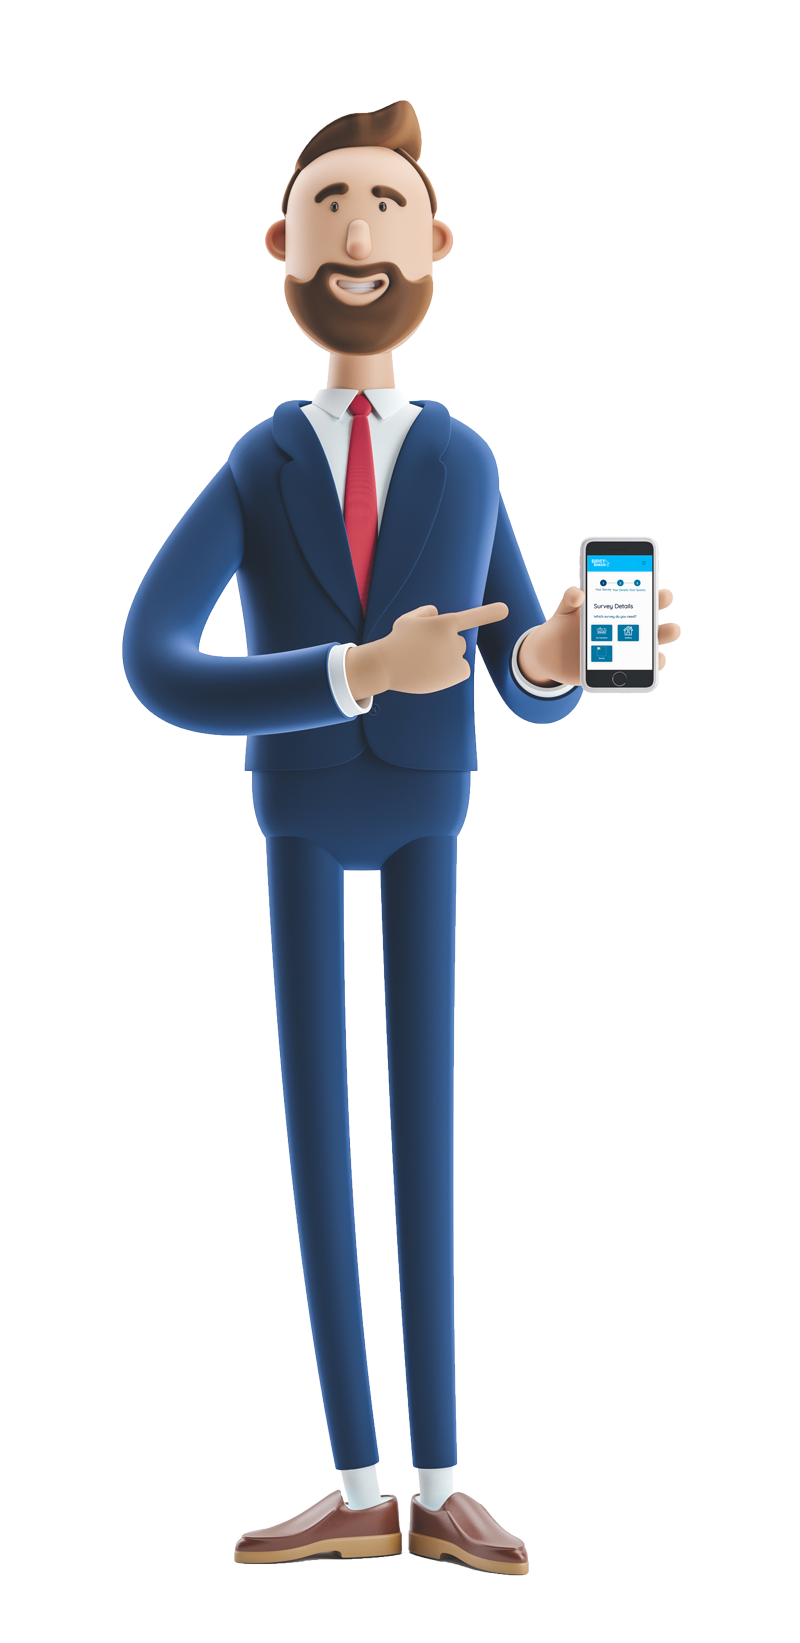 3d male character standing up pointing at his mobile phone screen